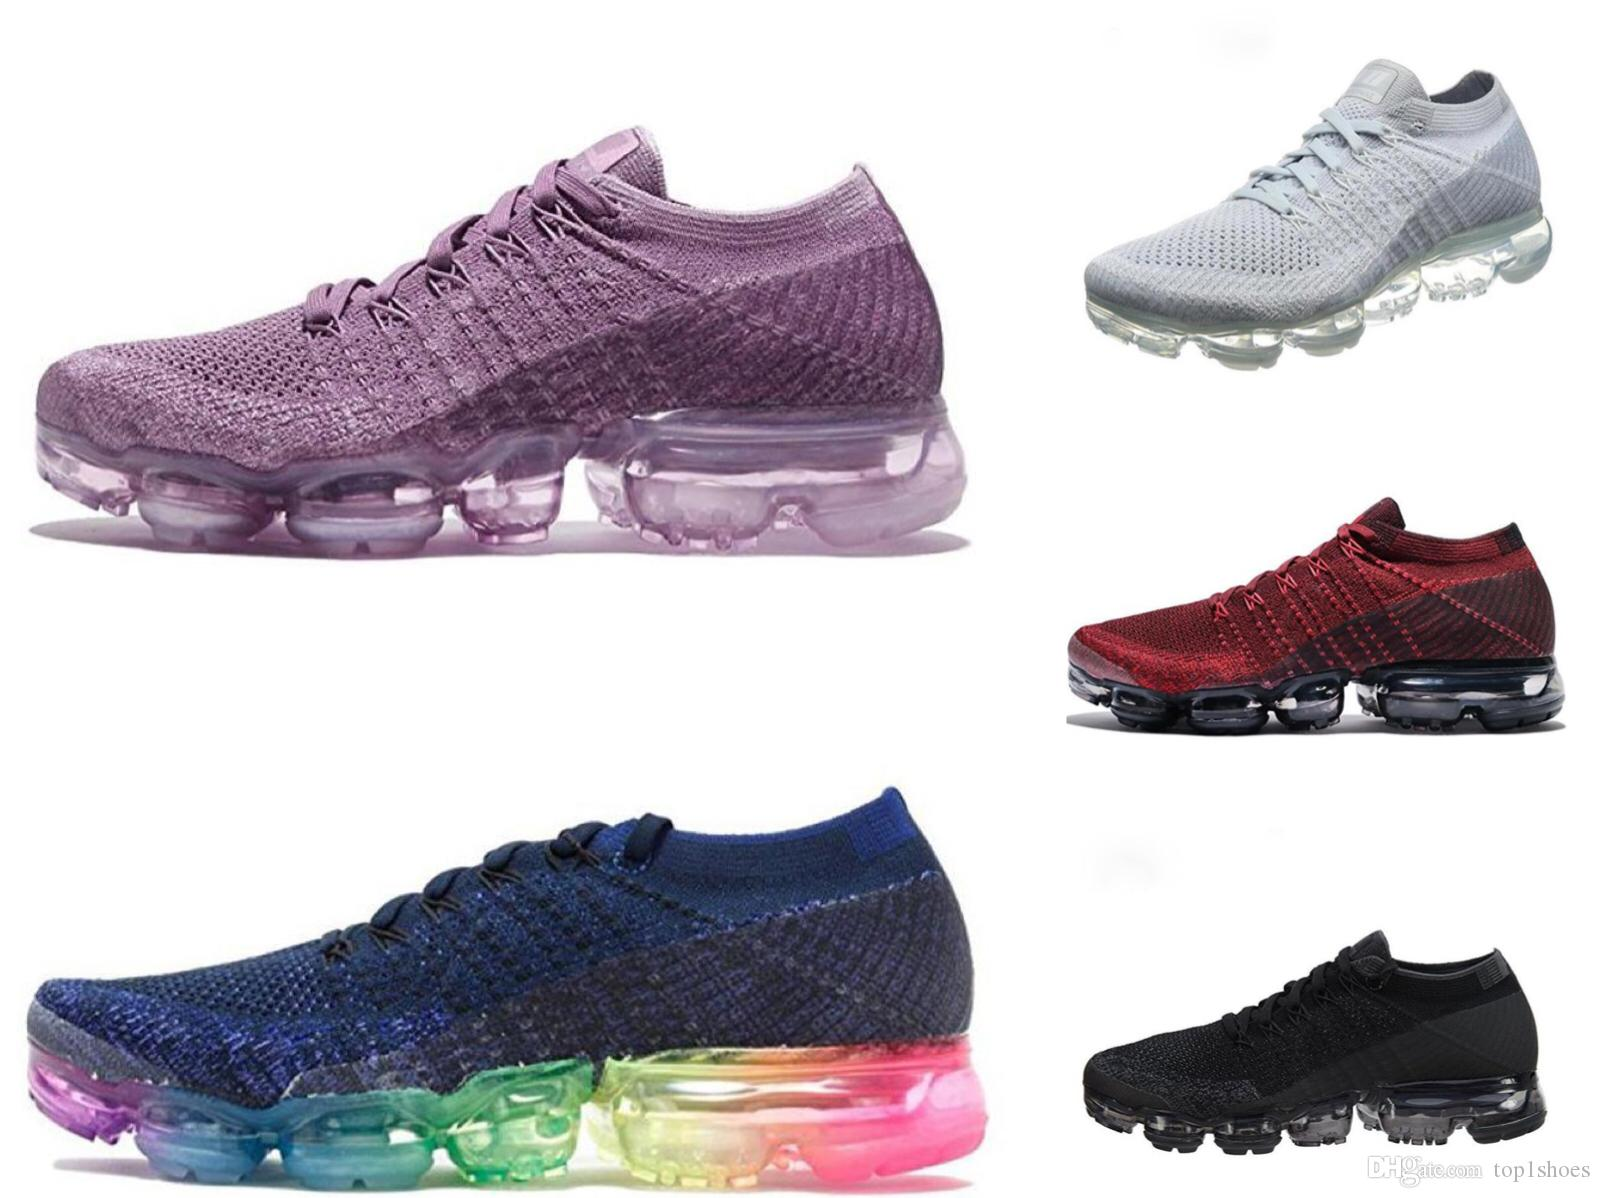 2017 New Vapormax Mens Running Shoes For Men Sneakers Women Fashion Athletic Sport Shoe Hot Corss Hiking Jogging Walking Outdoor Shoes extremely best prices online 5h9hl5aQz2